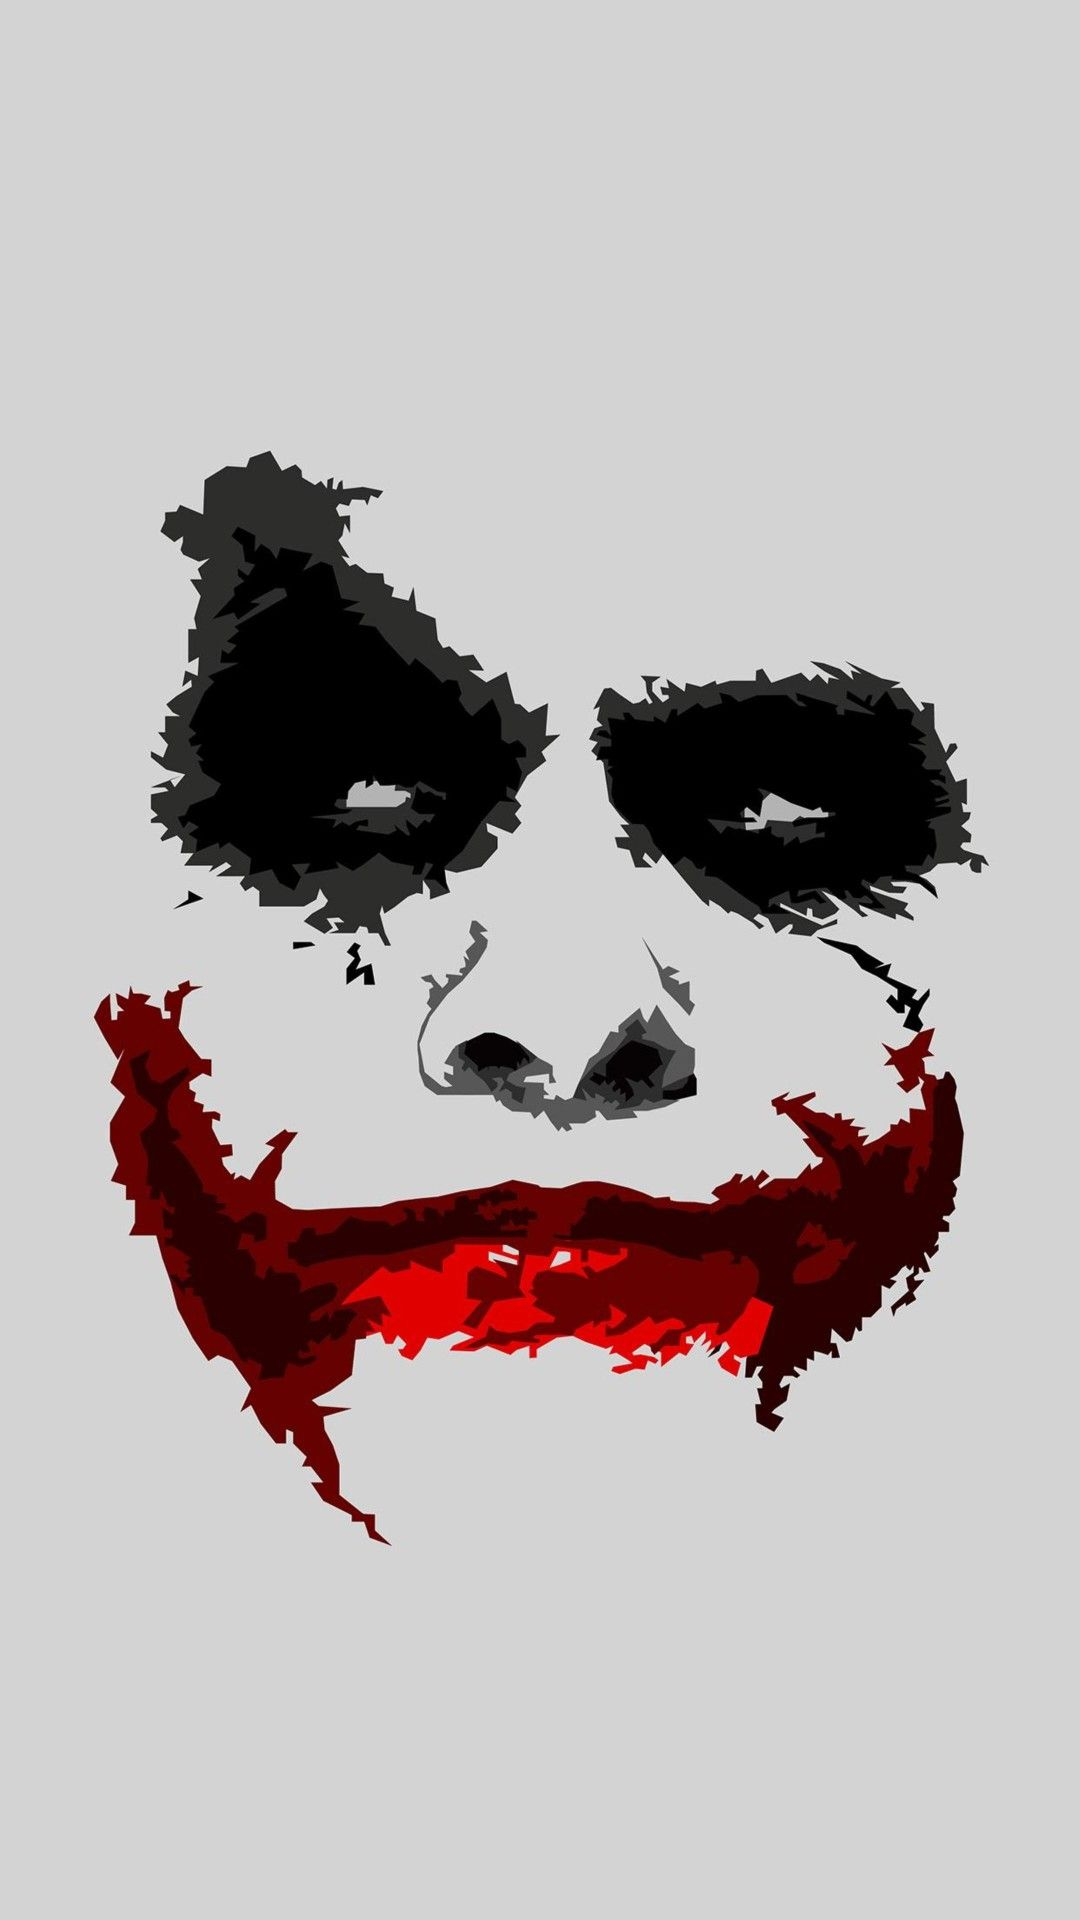 Joker Art Joker Iphone Wallpaper Joker Wallpapers Joker